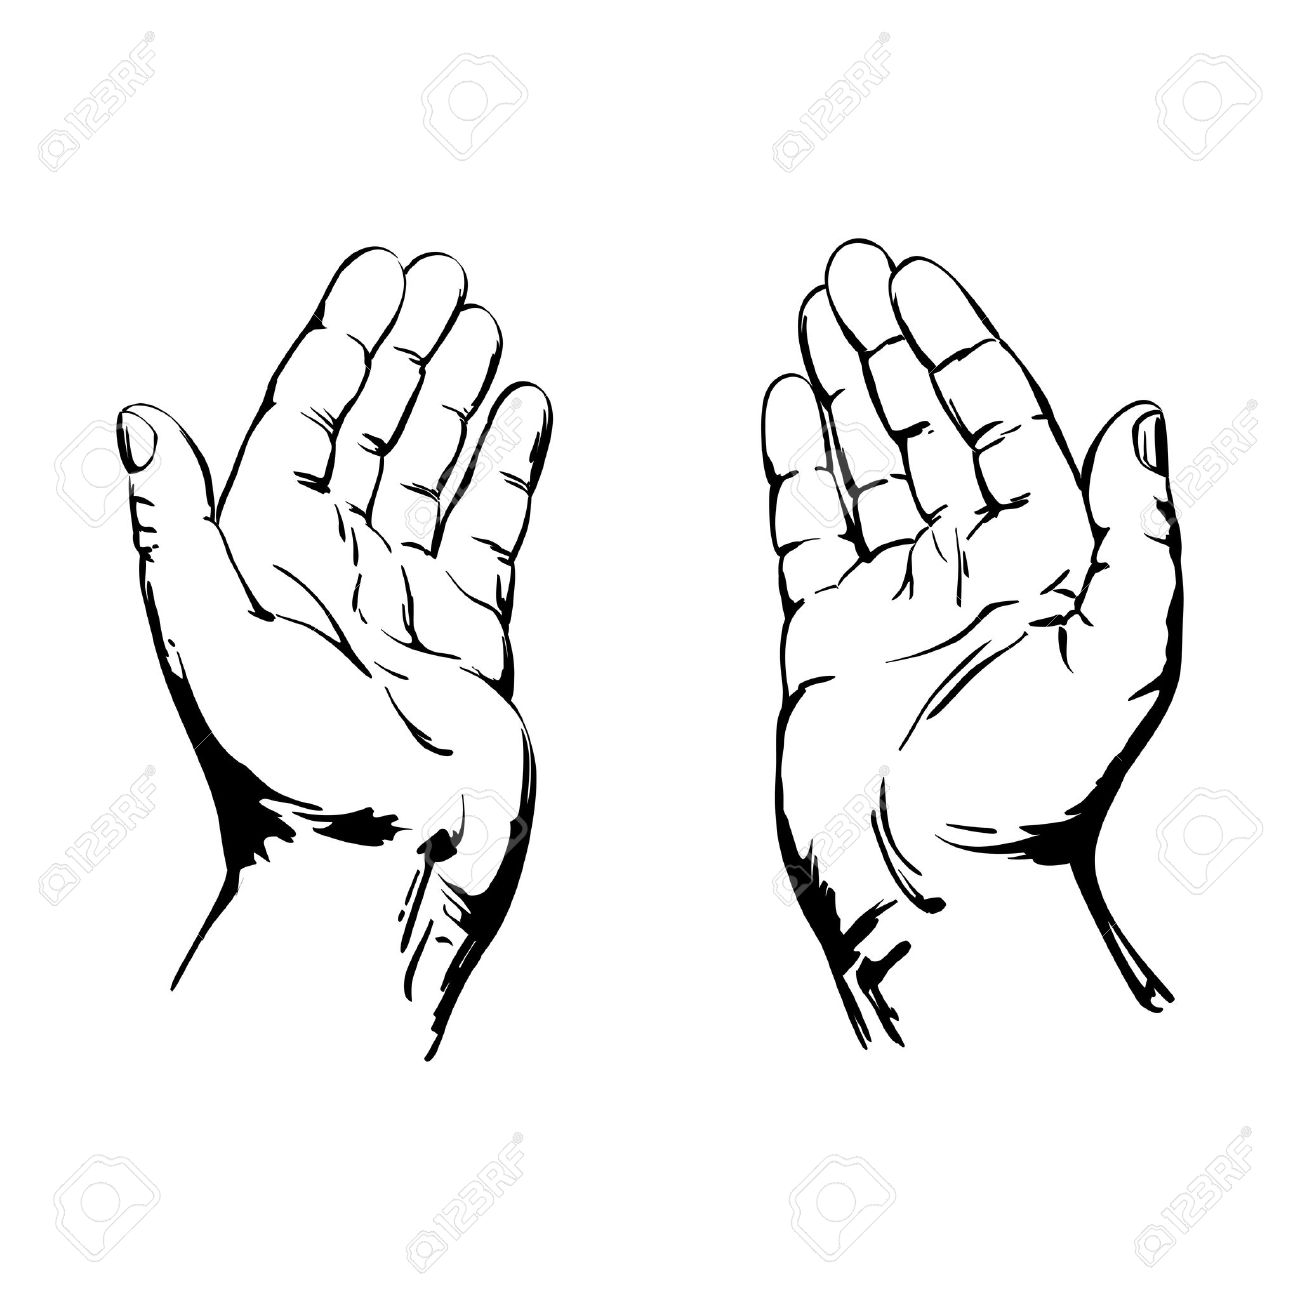 Hand Of God Clipart.